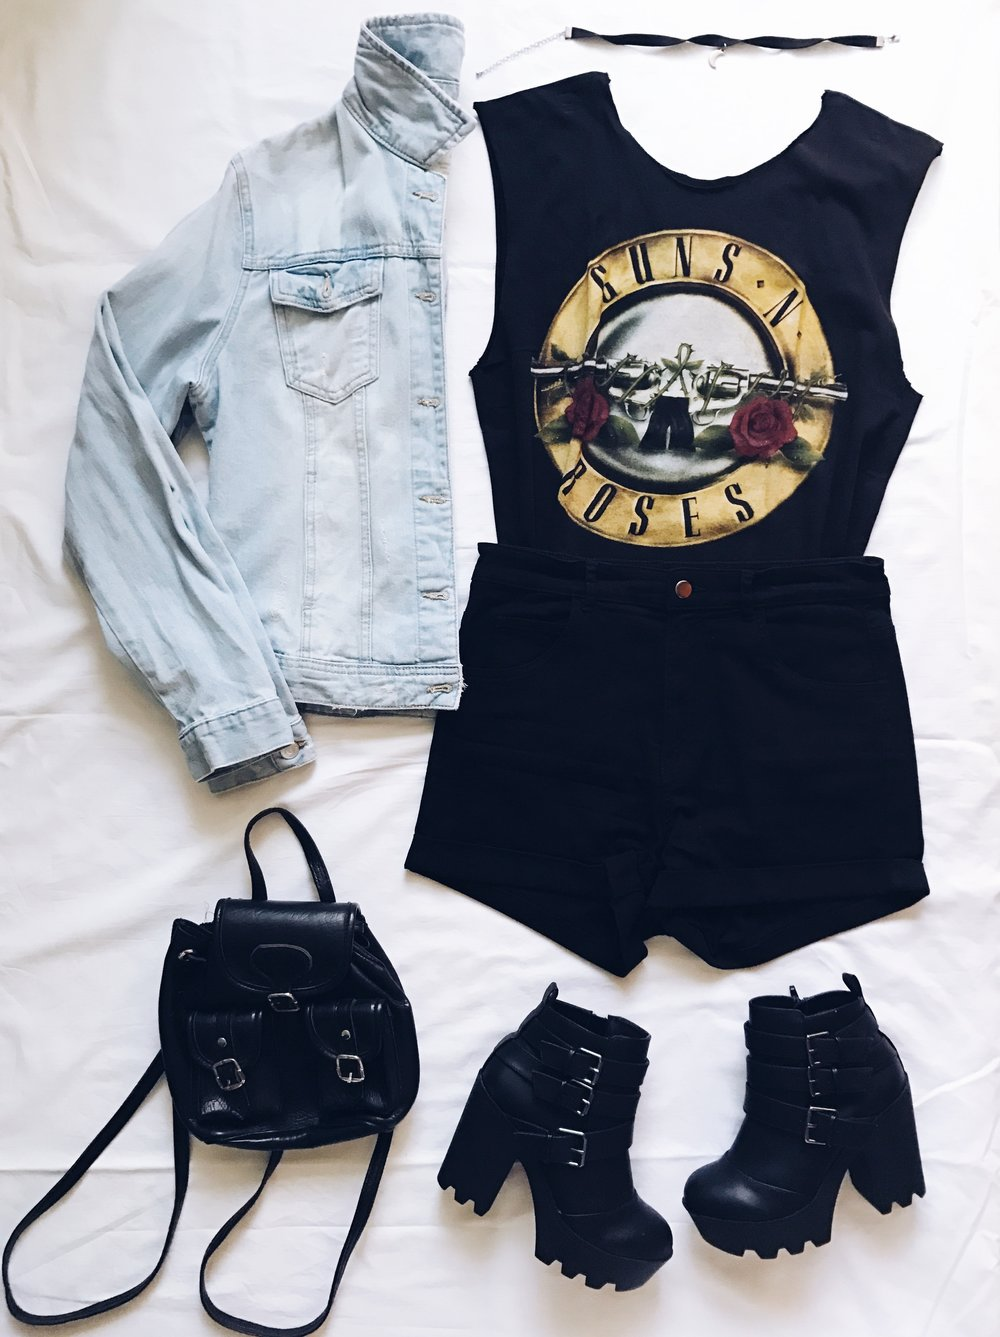 Guns n Roses t-shirt: Hottopic. Customized and cut by me :P  Denim jacket: Calliope  Boots: Tally Weijl  Choker: Amazon Fashion  Vintage Backpack